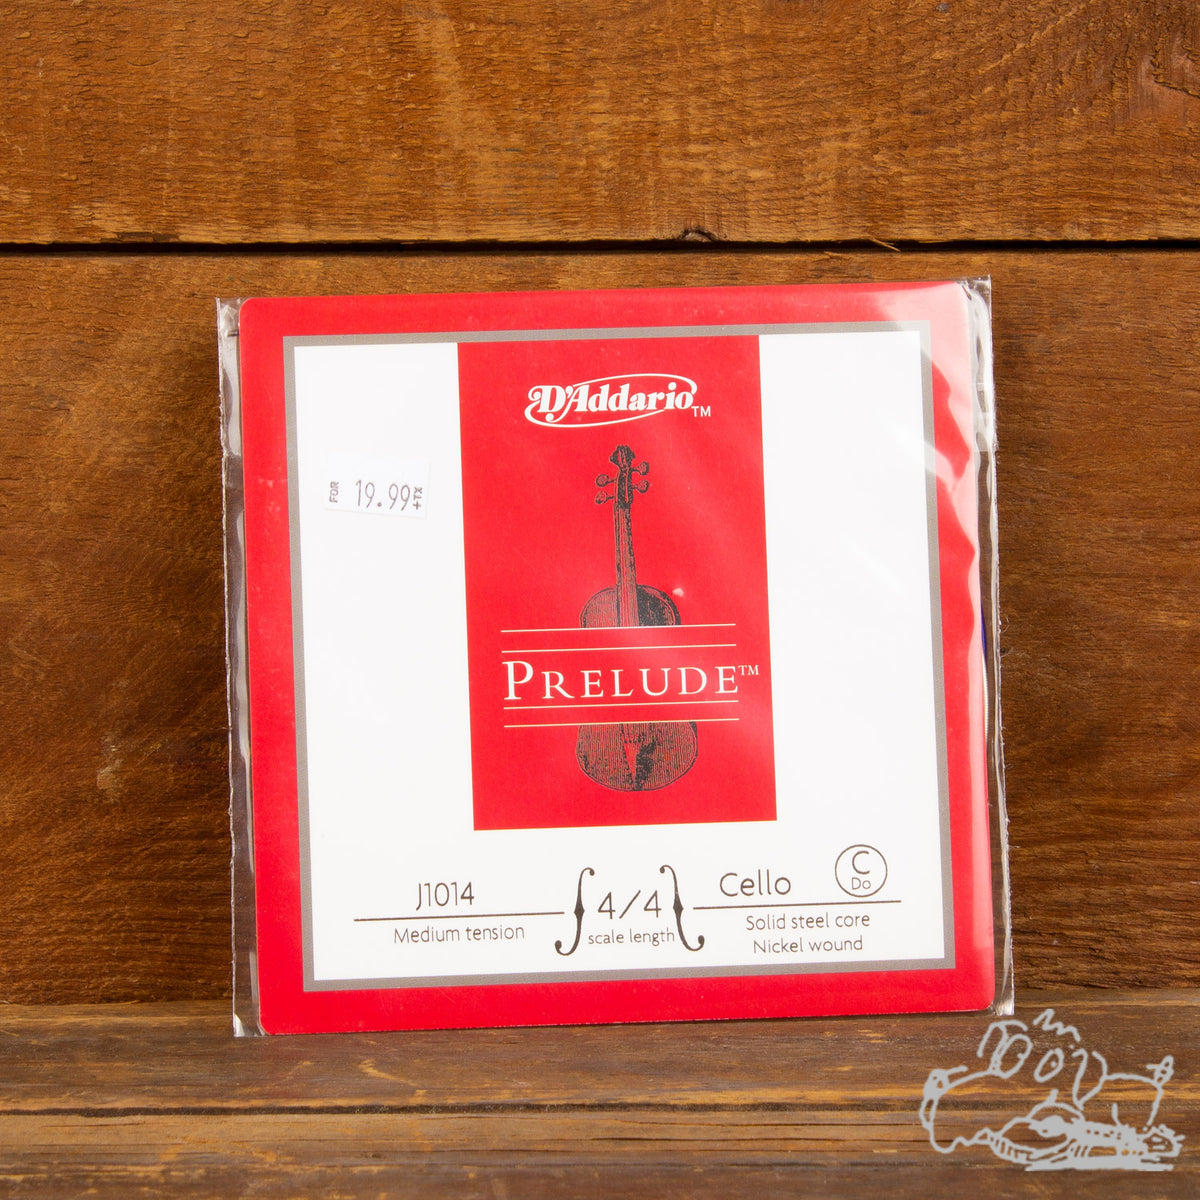 Prelude Cello Strings, 4/4 Scale, Medium Tension (Individual Strings C, G, D, A)